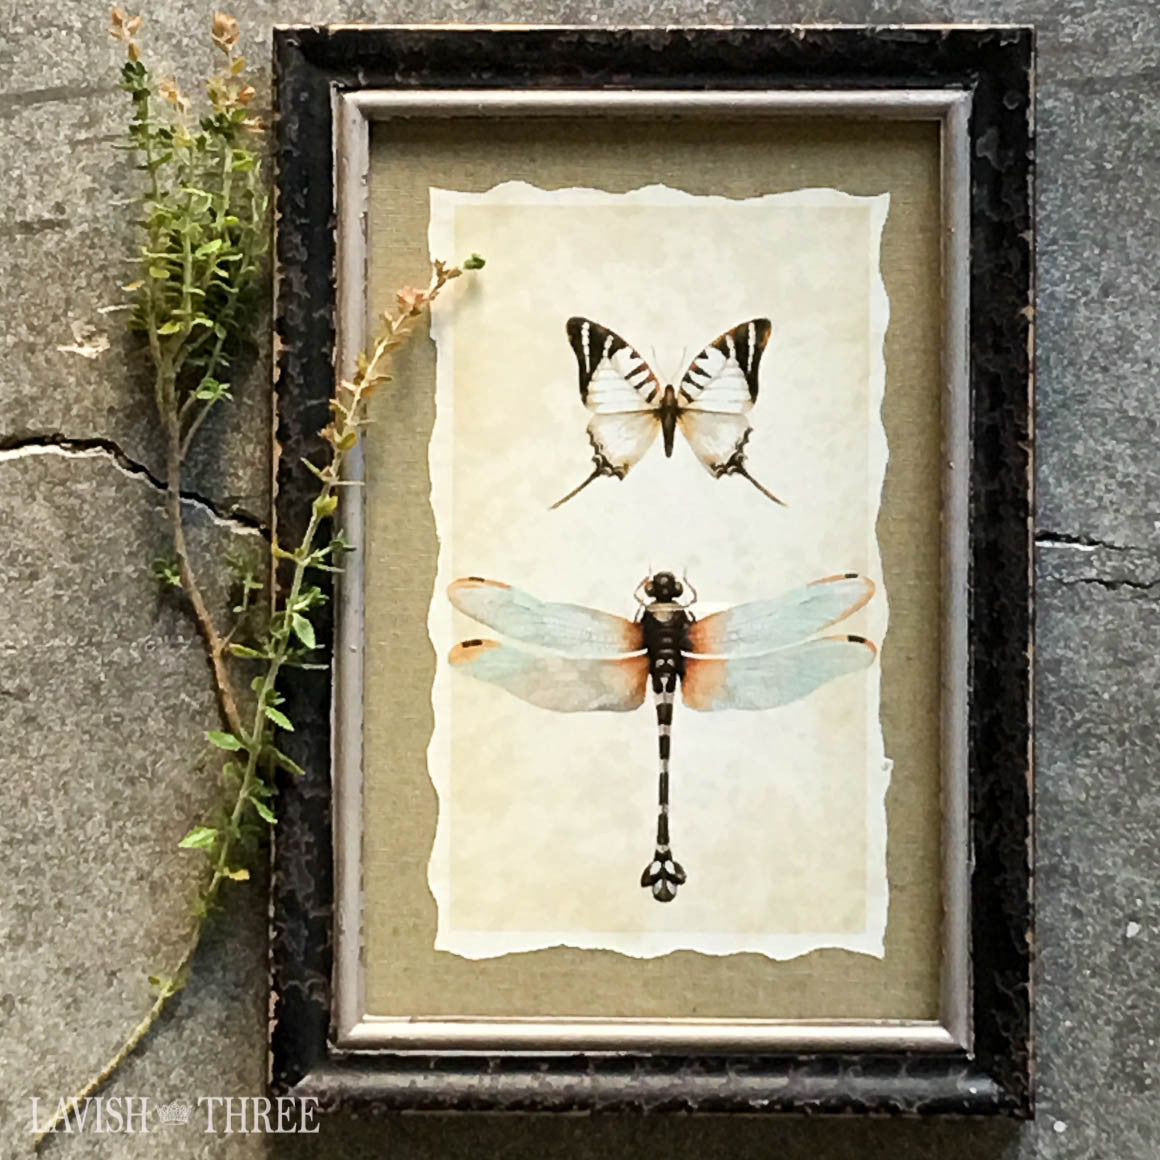 Dragonfly butterfly insect vintage look framed shabby print wall art Lavish three 3